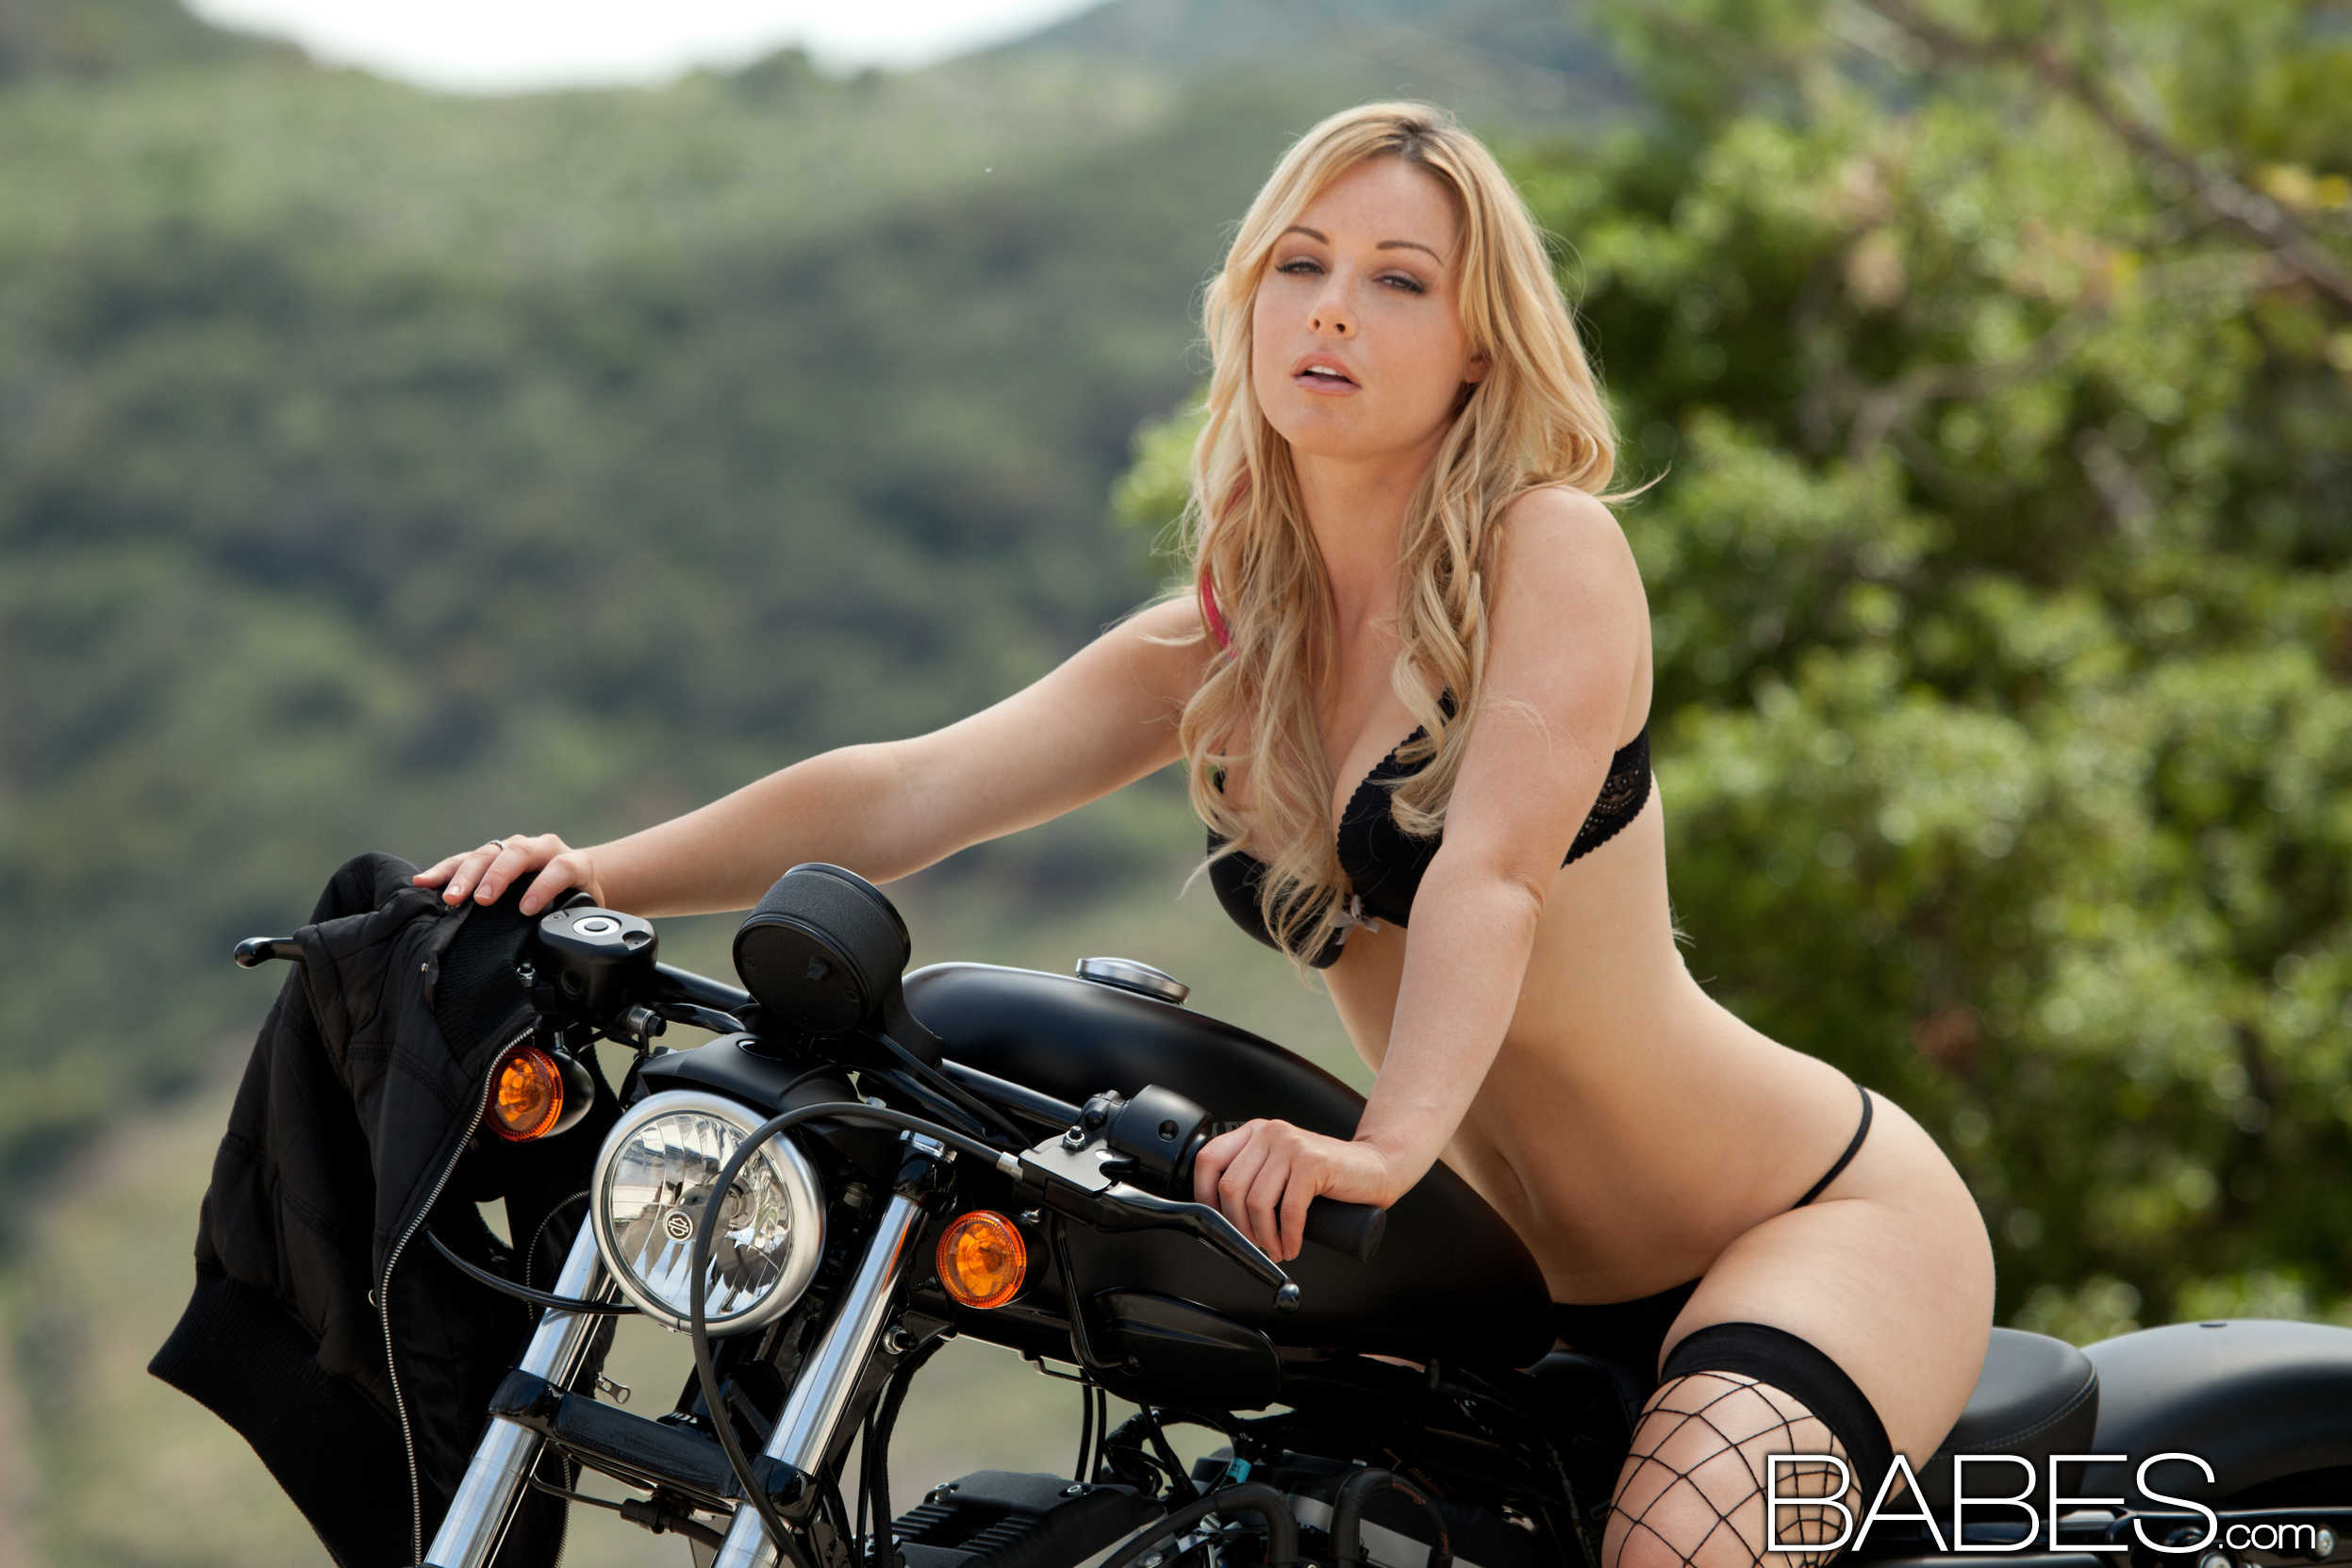 kayden kross bad biker girl with a perfect ass 2 greatnass.com_